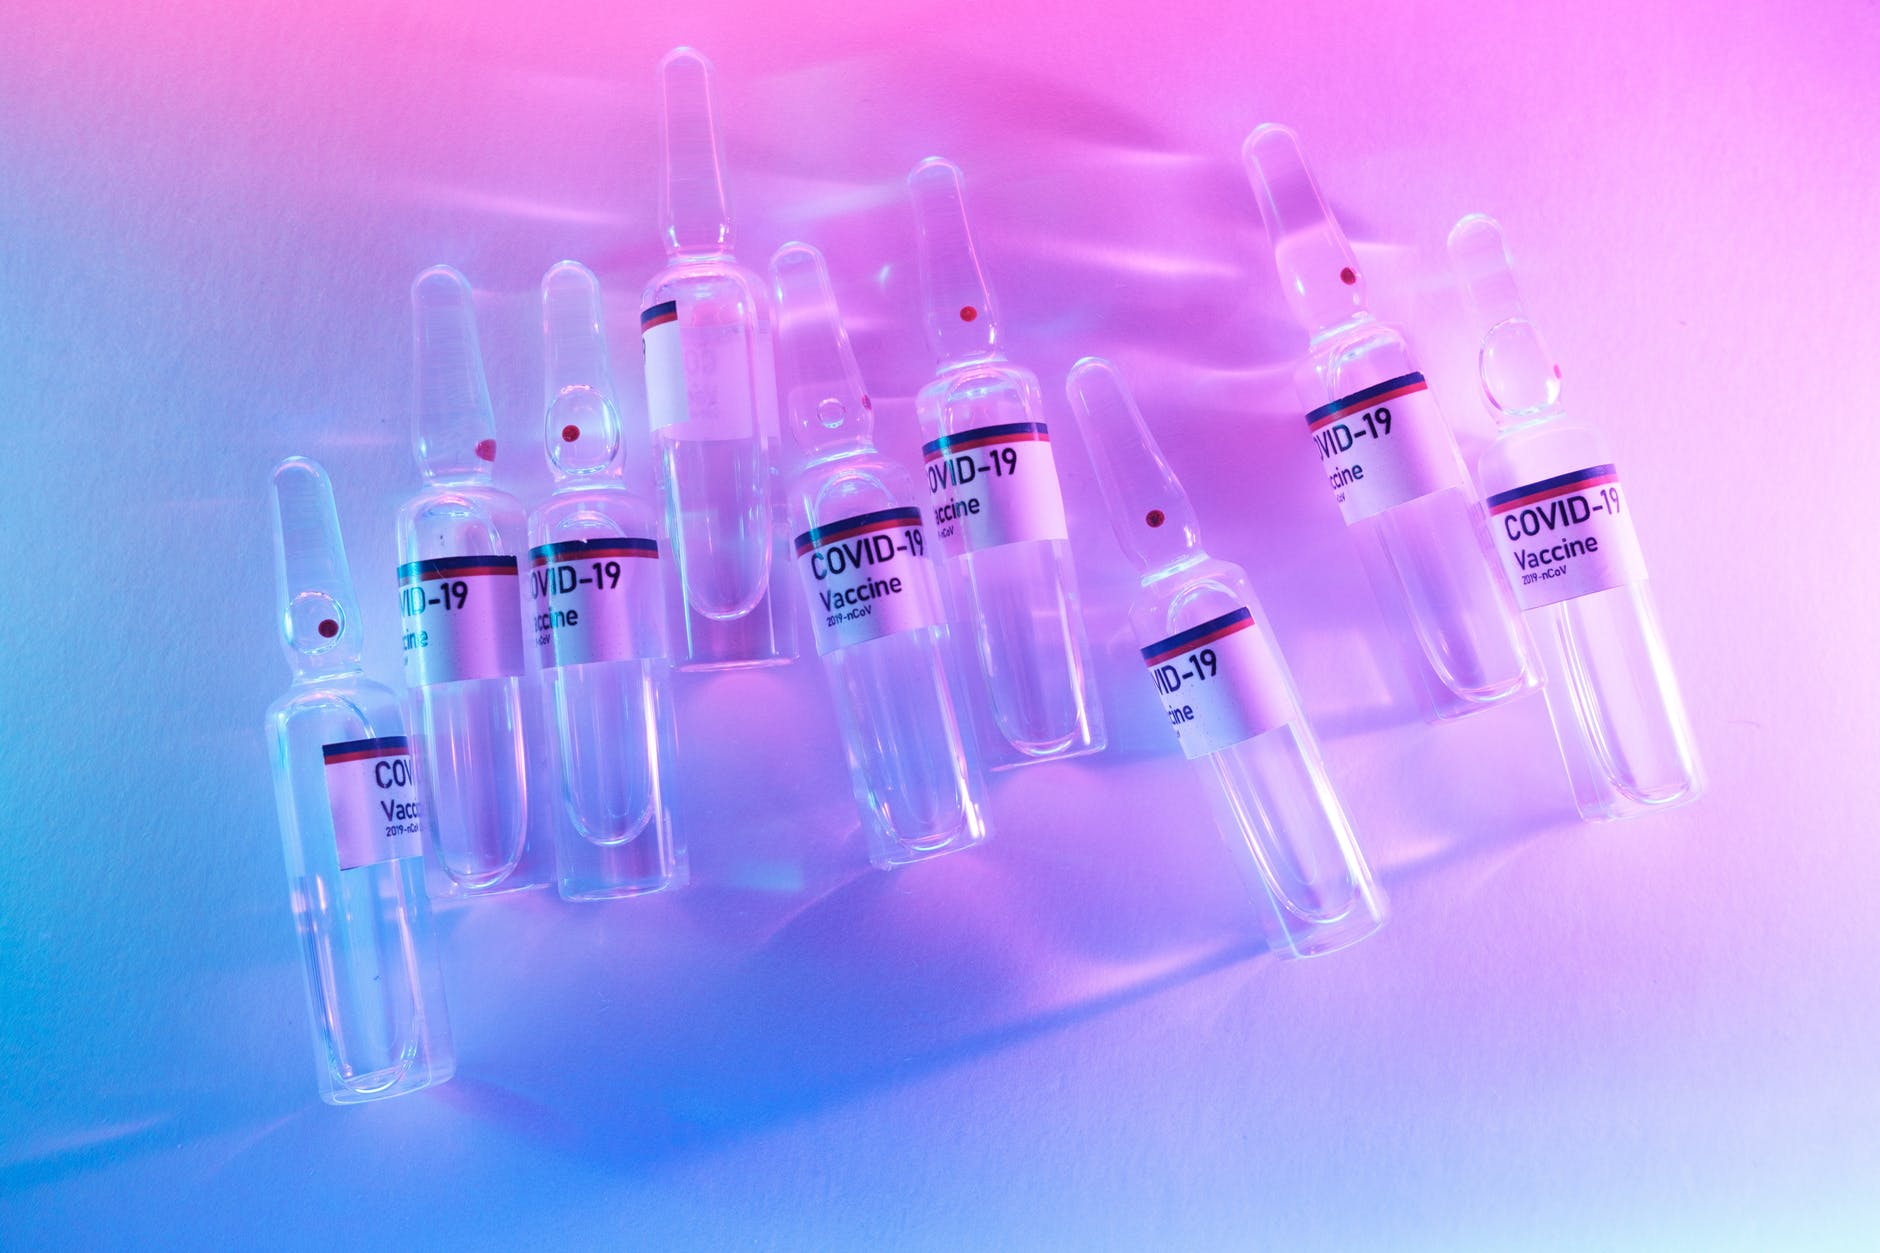 Atossa Therapeutics (ATOS) is developing a COVID-19 nasal spray, should you invest?